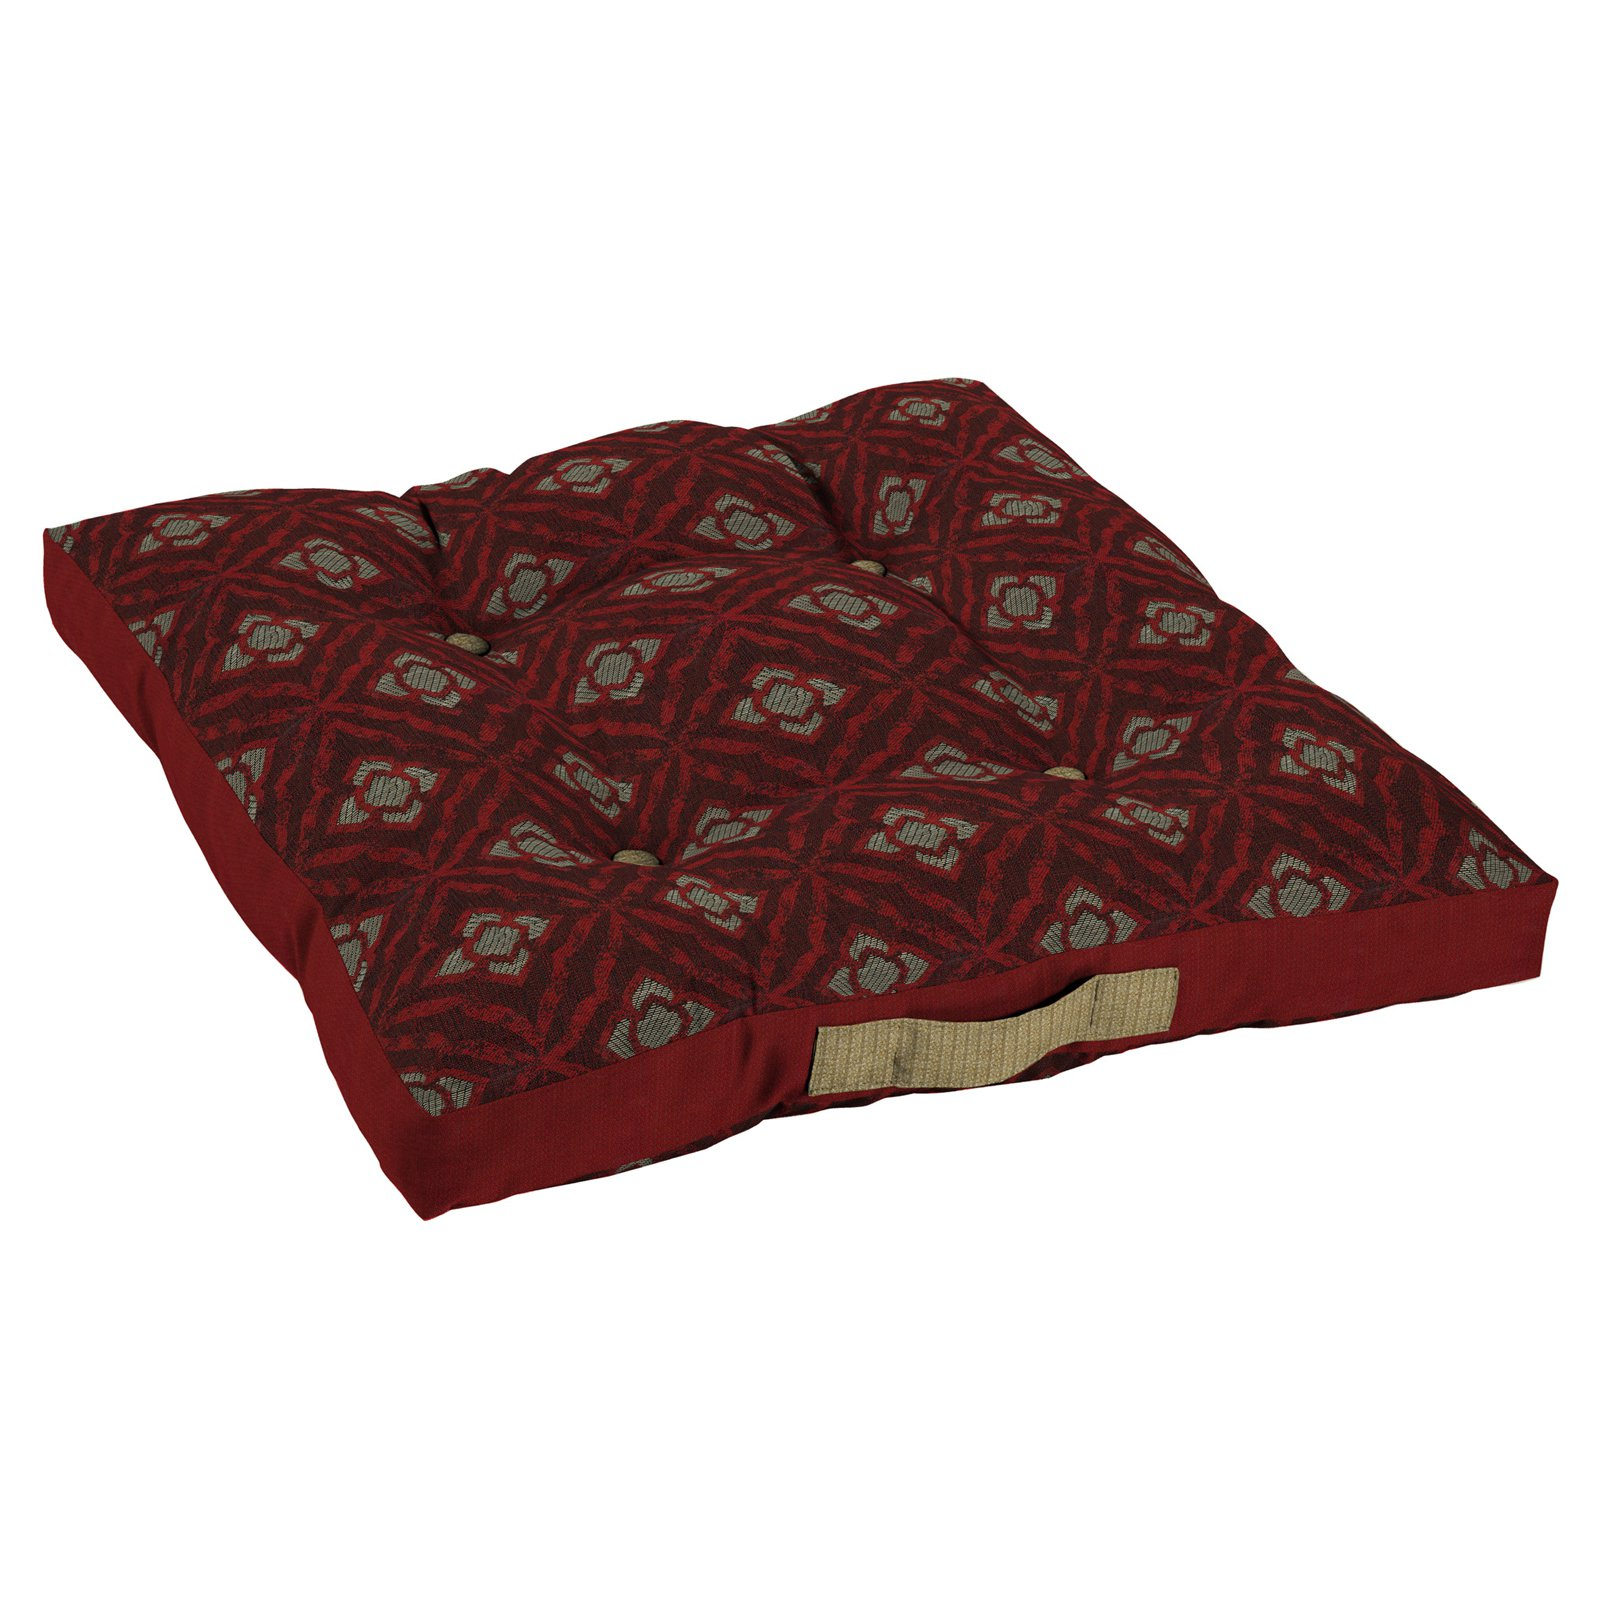 Bombay Outdoors Geo Floral Berry Oversize Floor Pillow